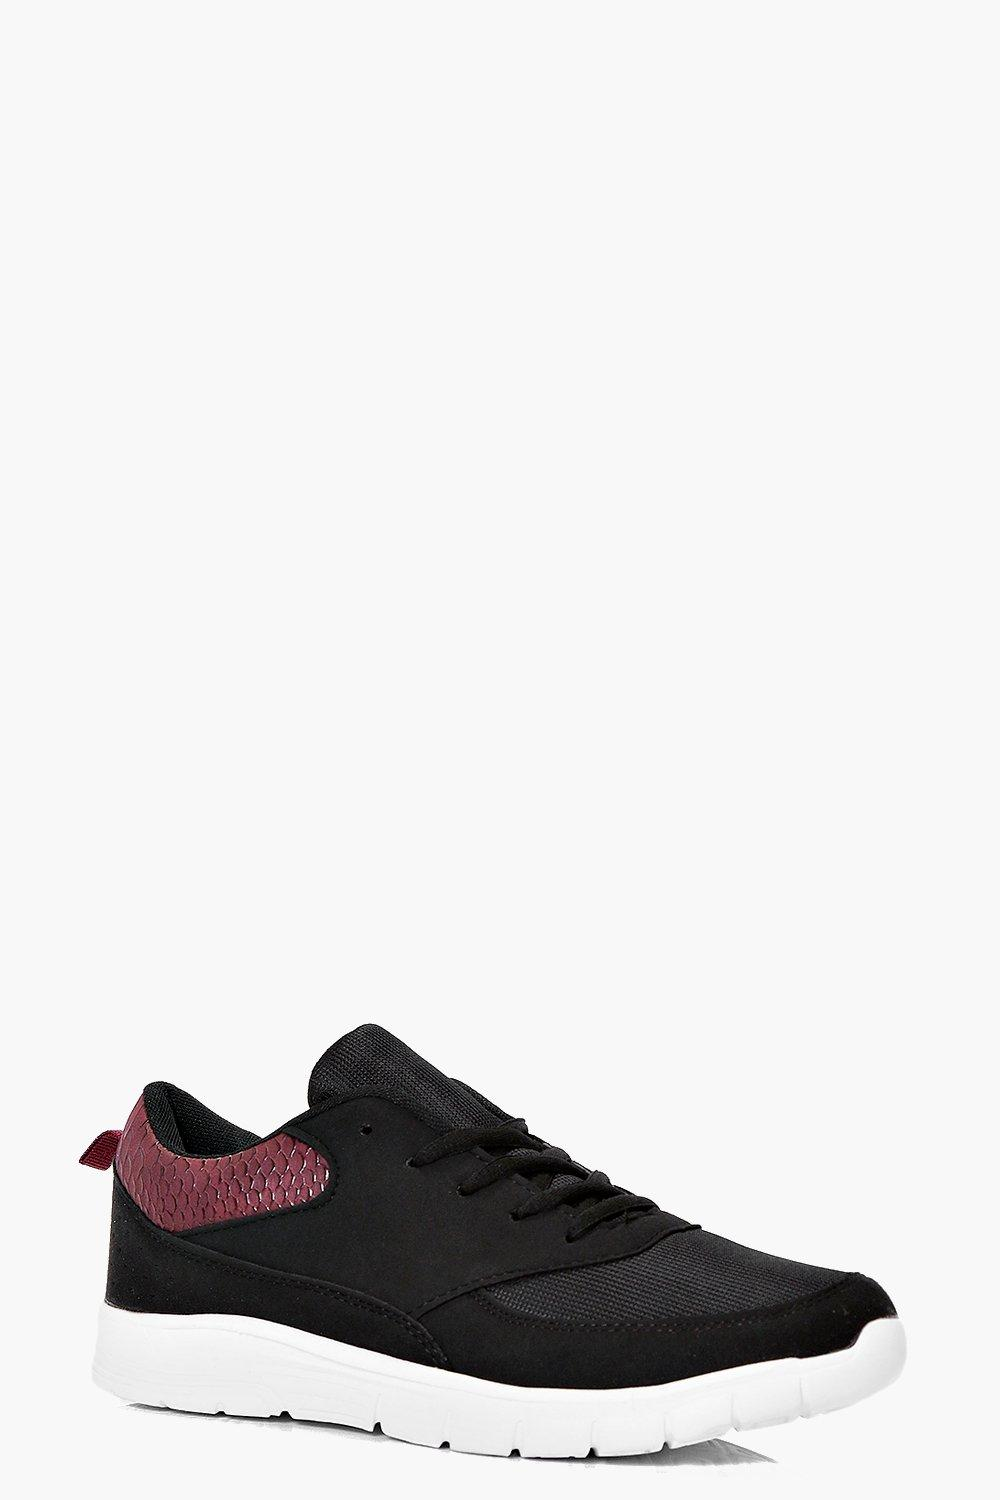 Millie Cleated Lace Up Trainer